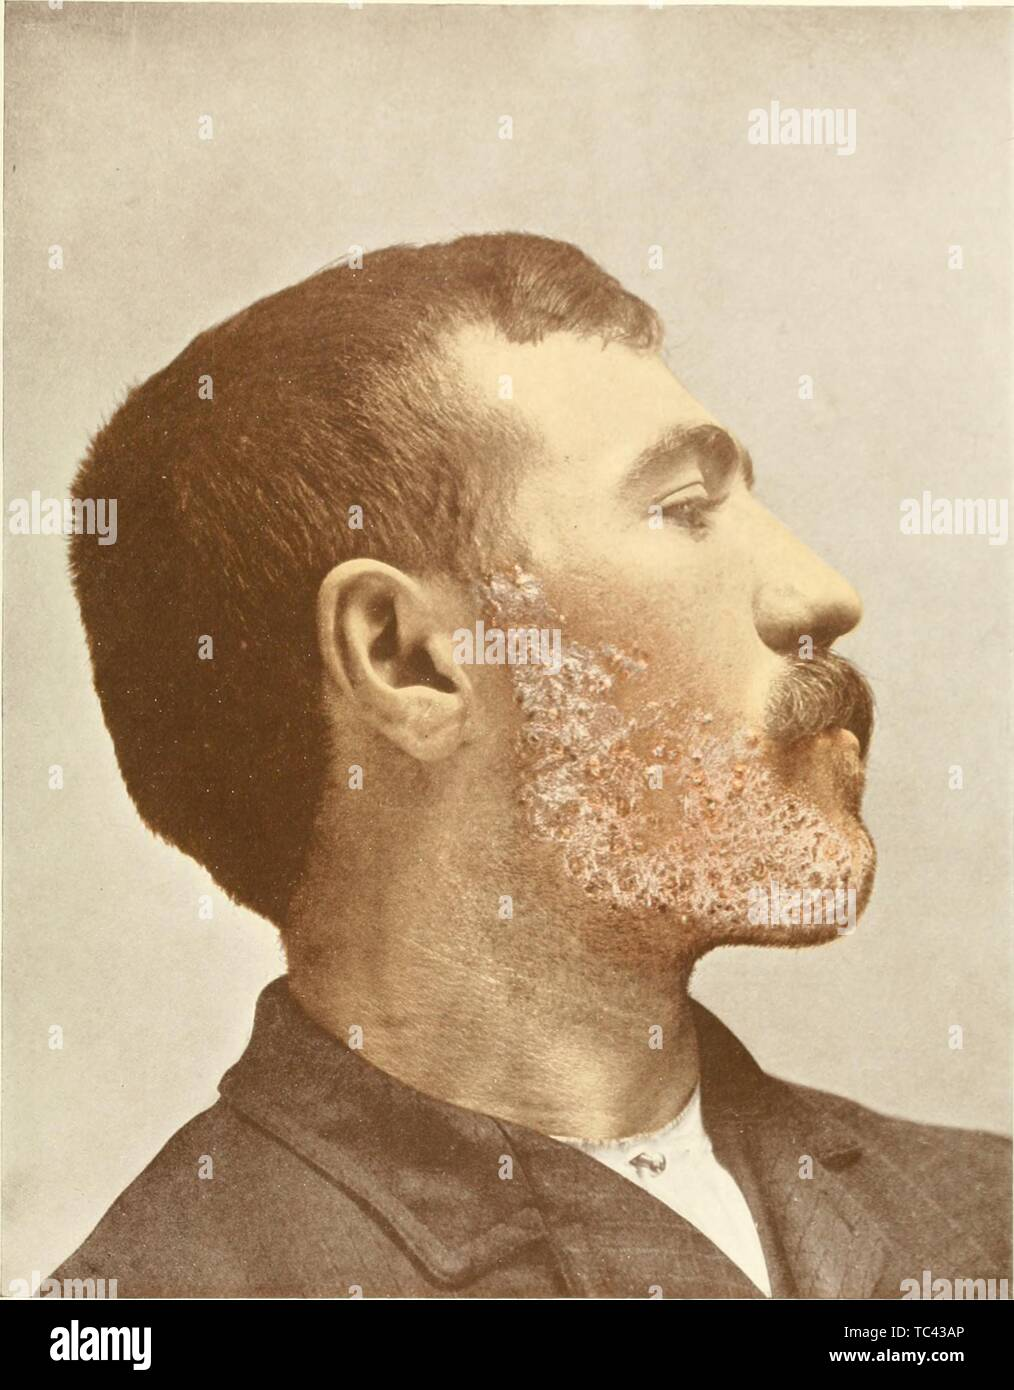 Engraved portrait of a male human infected with sycosis vulgaris, a chronic infection of hair follicles of the chin or bearded region, from the book 'Photographic atlas of the diseases of the skin' by George Henry Fox, 1905. Courtesy Internet Archive. () - Stock Image